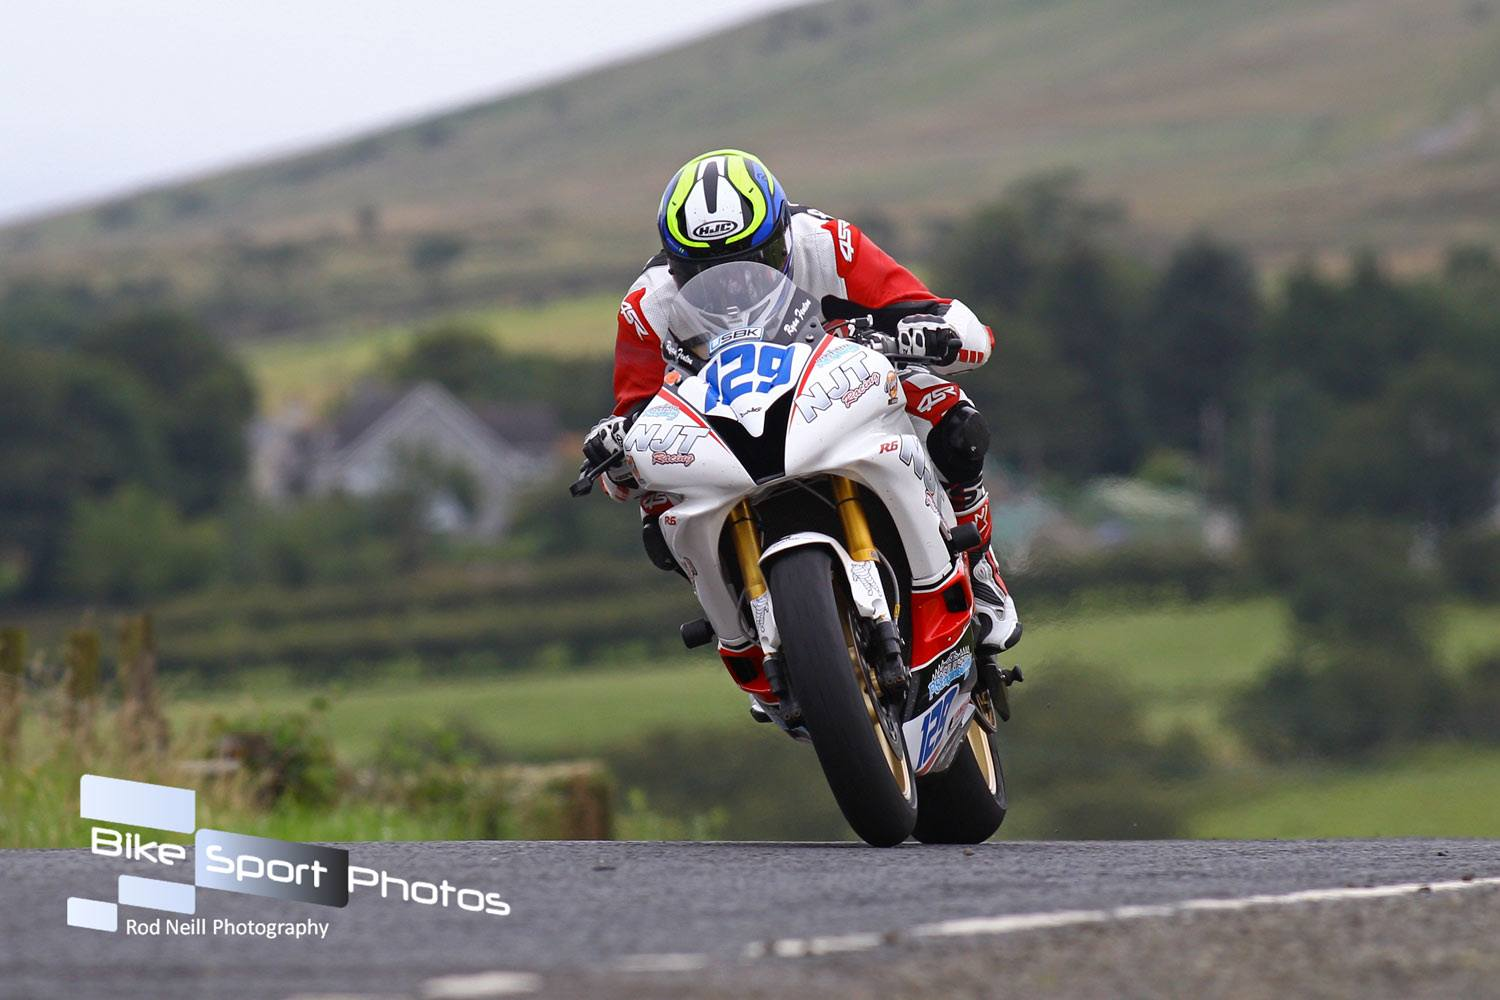 Armoy: Race Day Analysis – The Results, The Competition, The Super Heroes Feats Chronicled